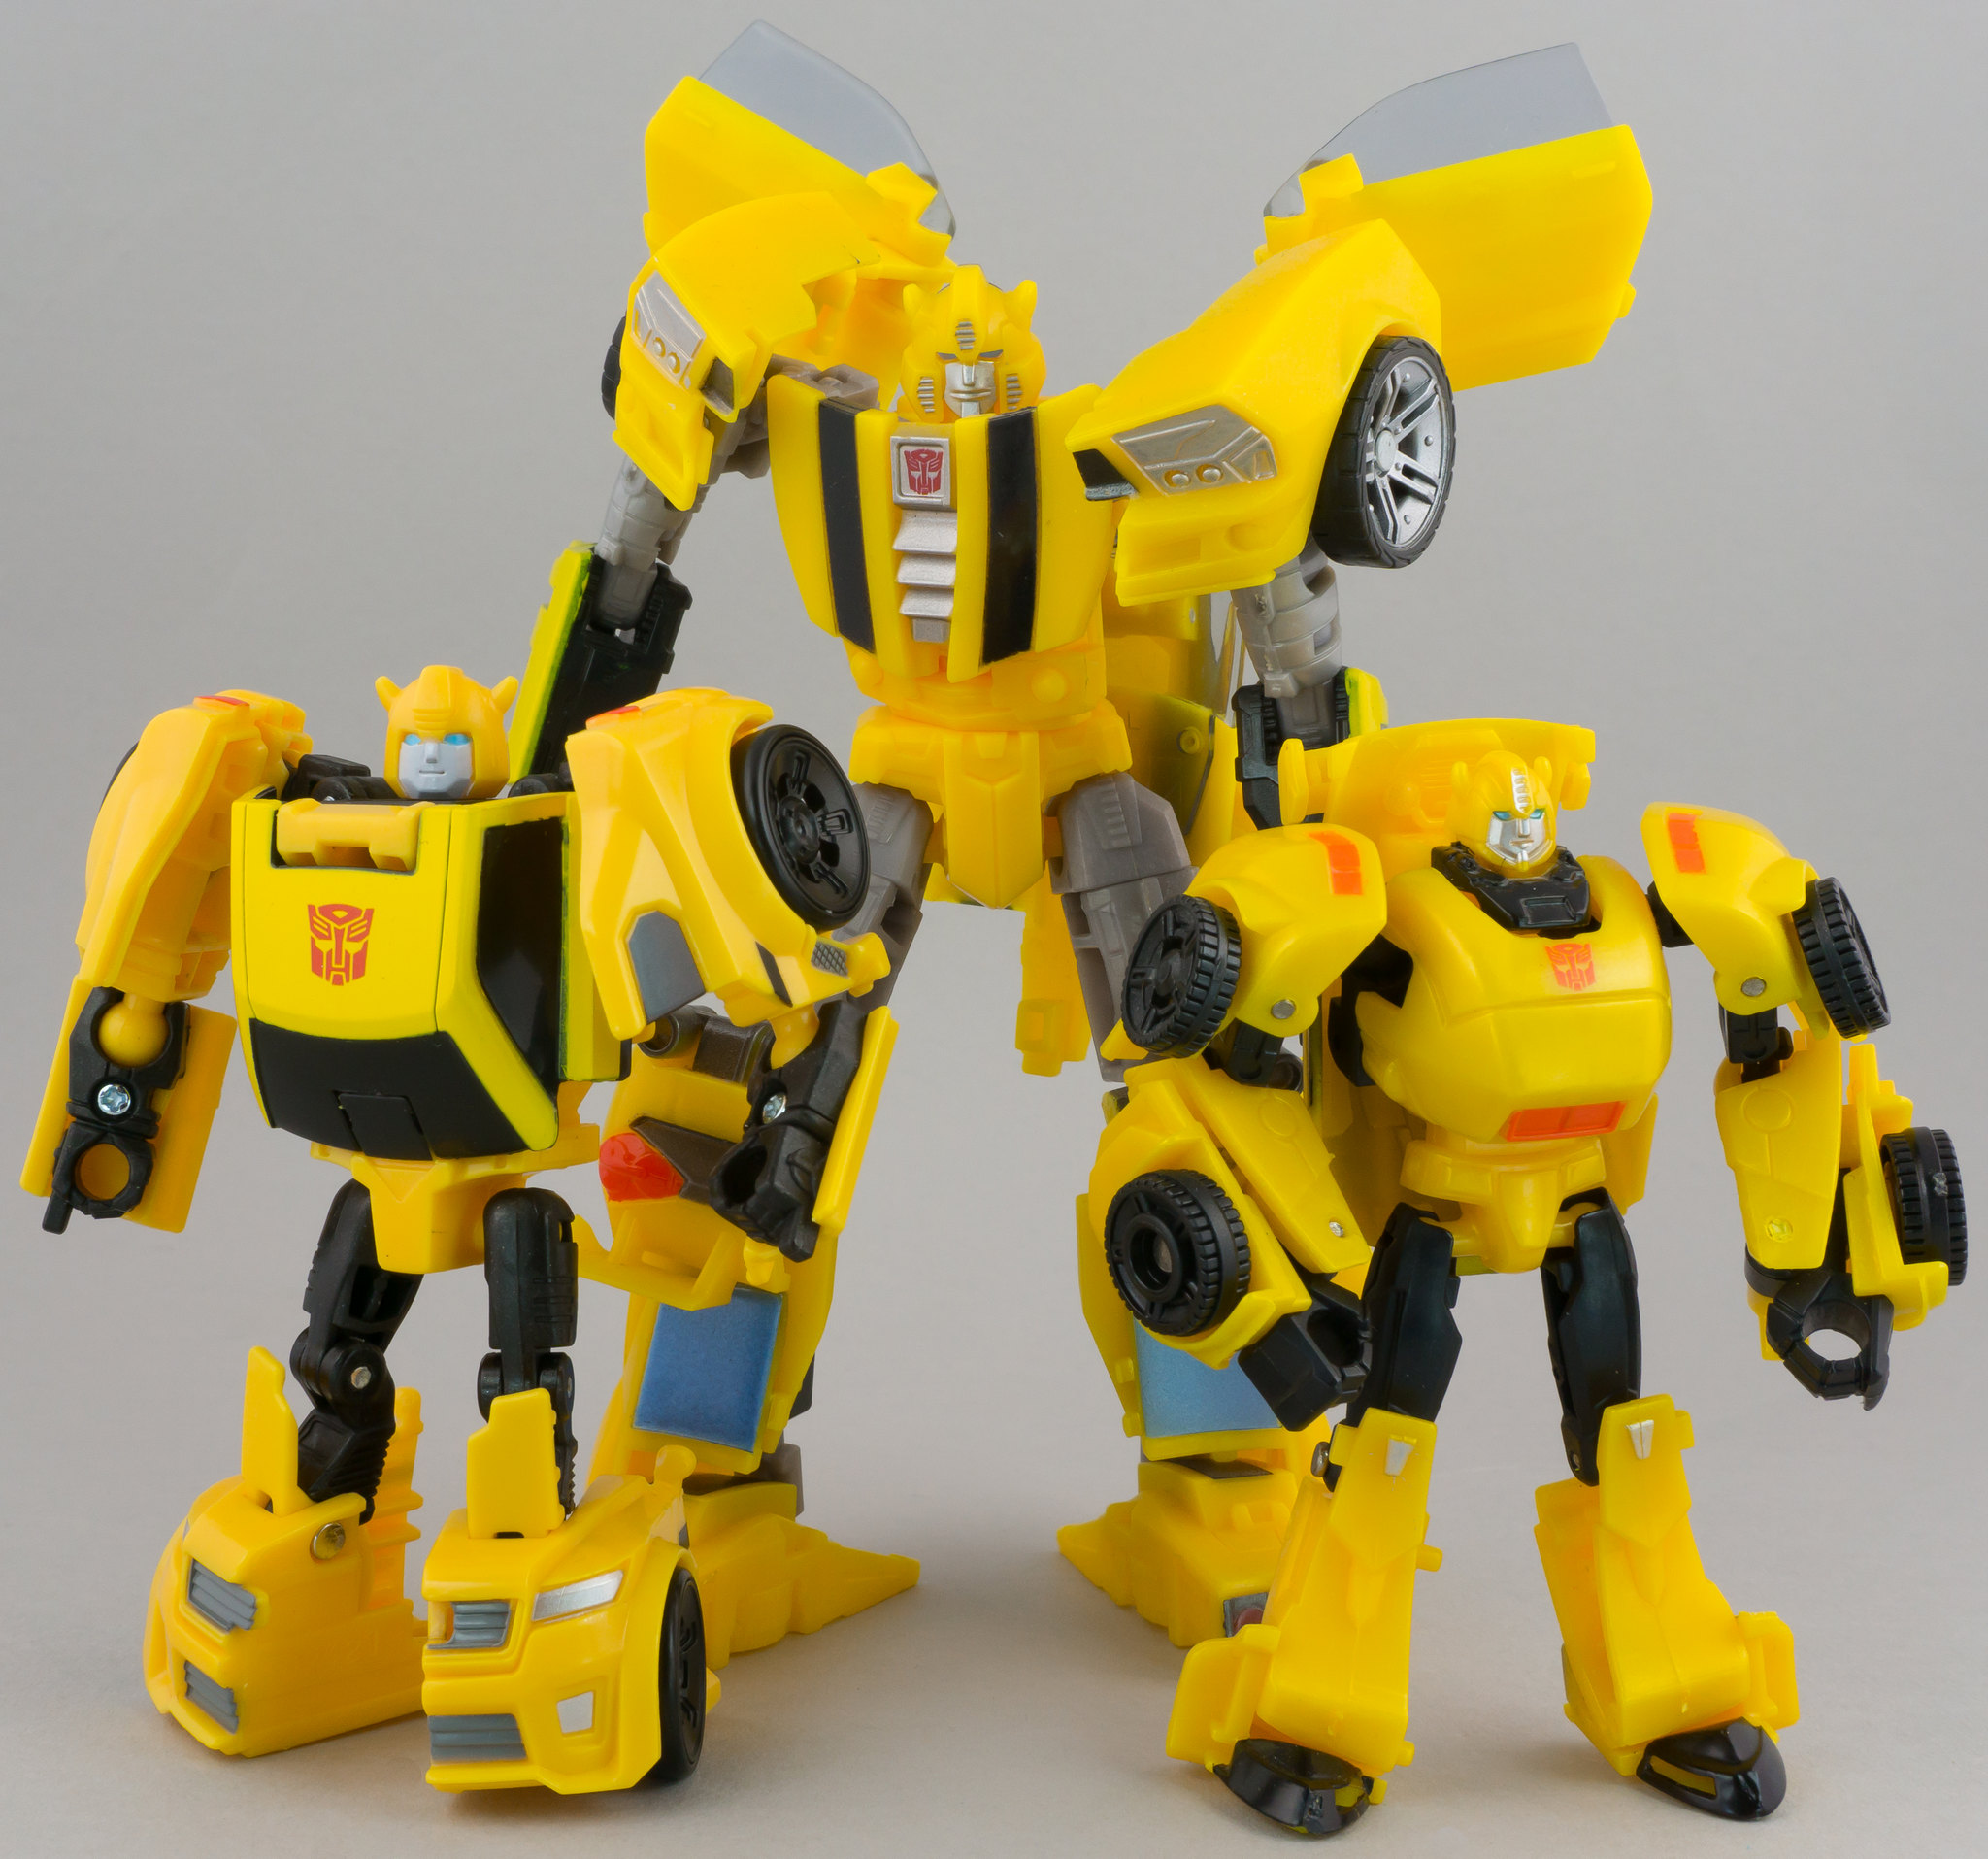 Hasbro Transformers Titans Return Legends Bumblebee Action Figures Robot Car Toy